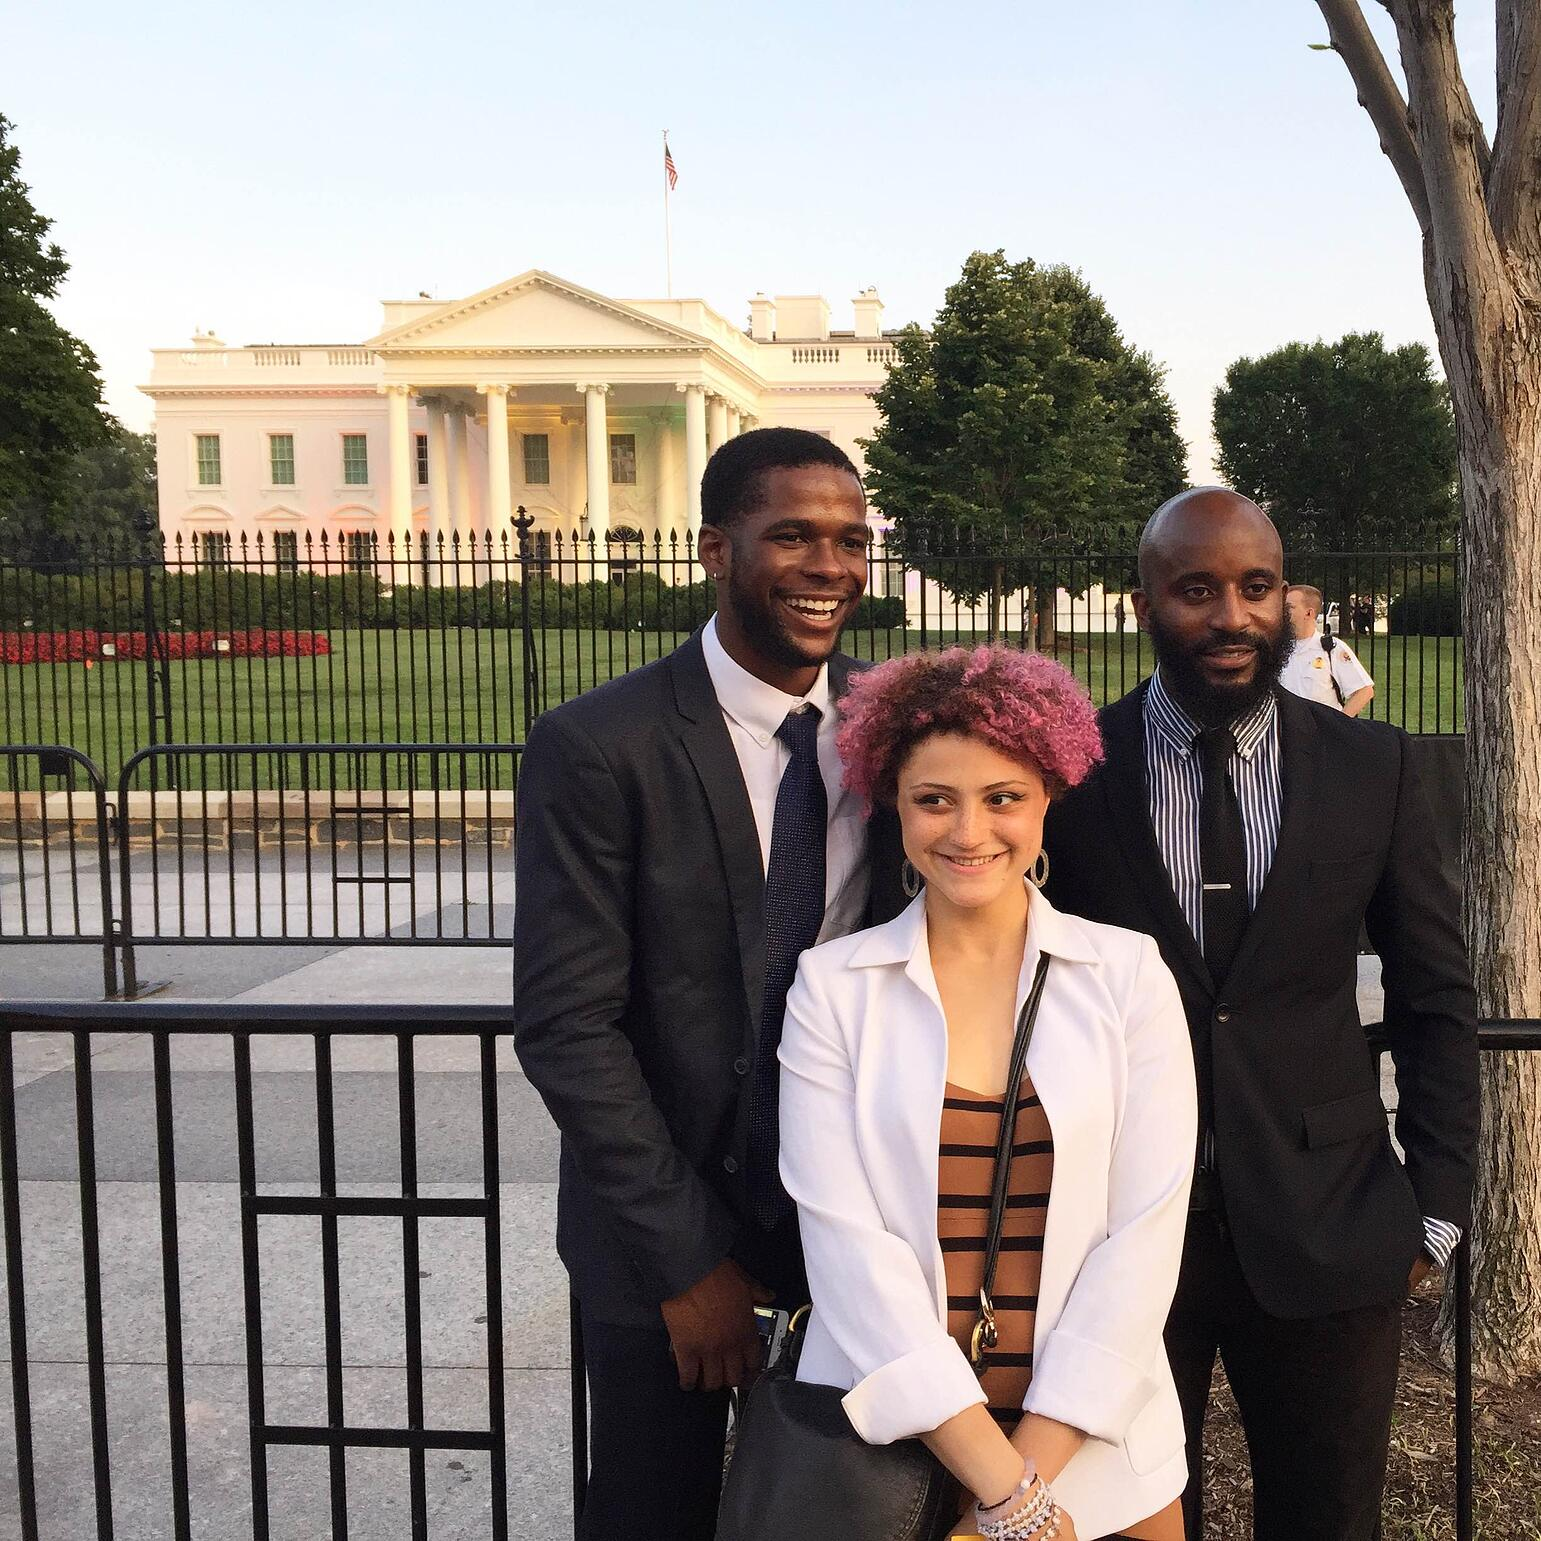 Expedition Denali team members in front of the White House